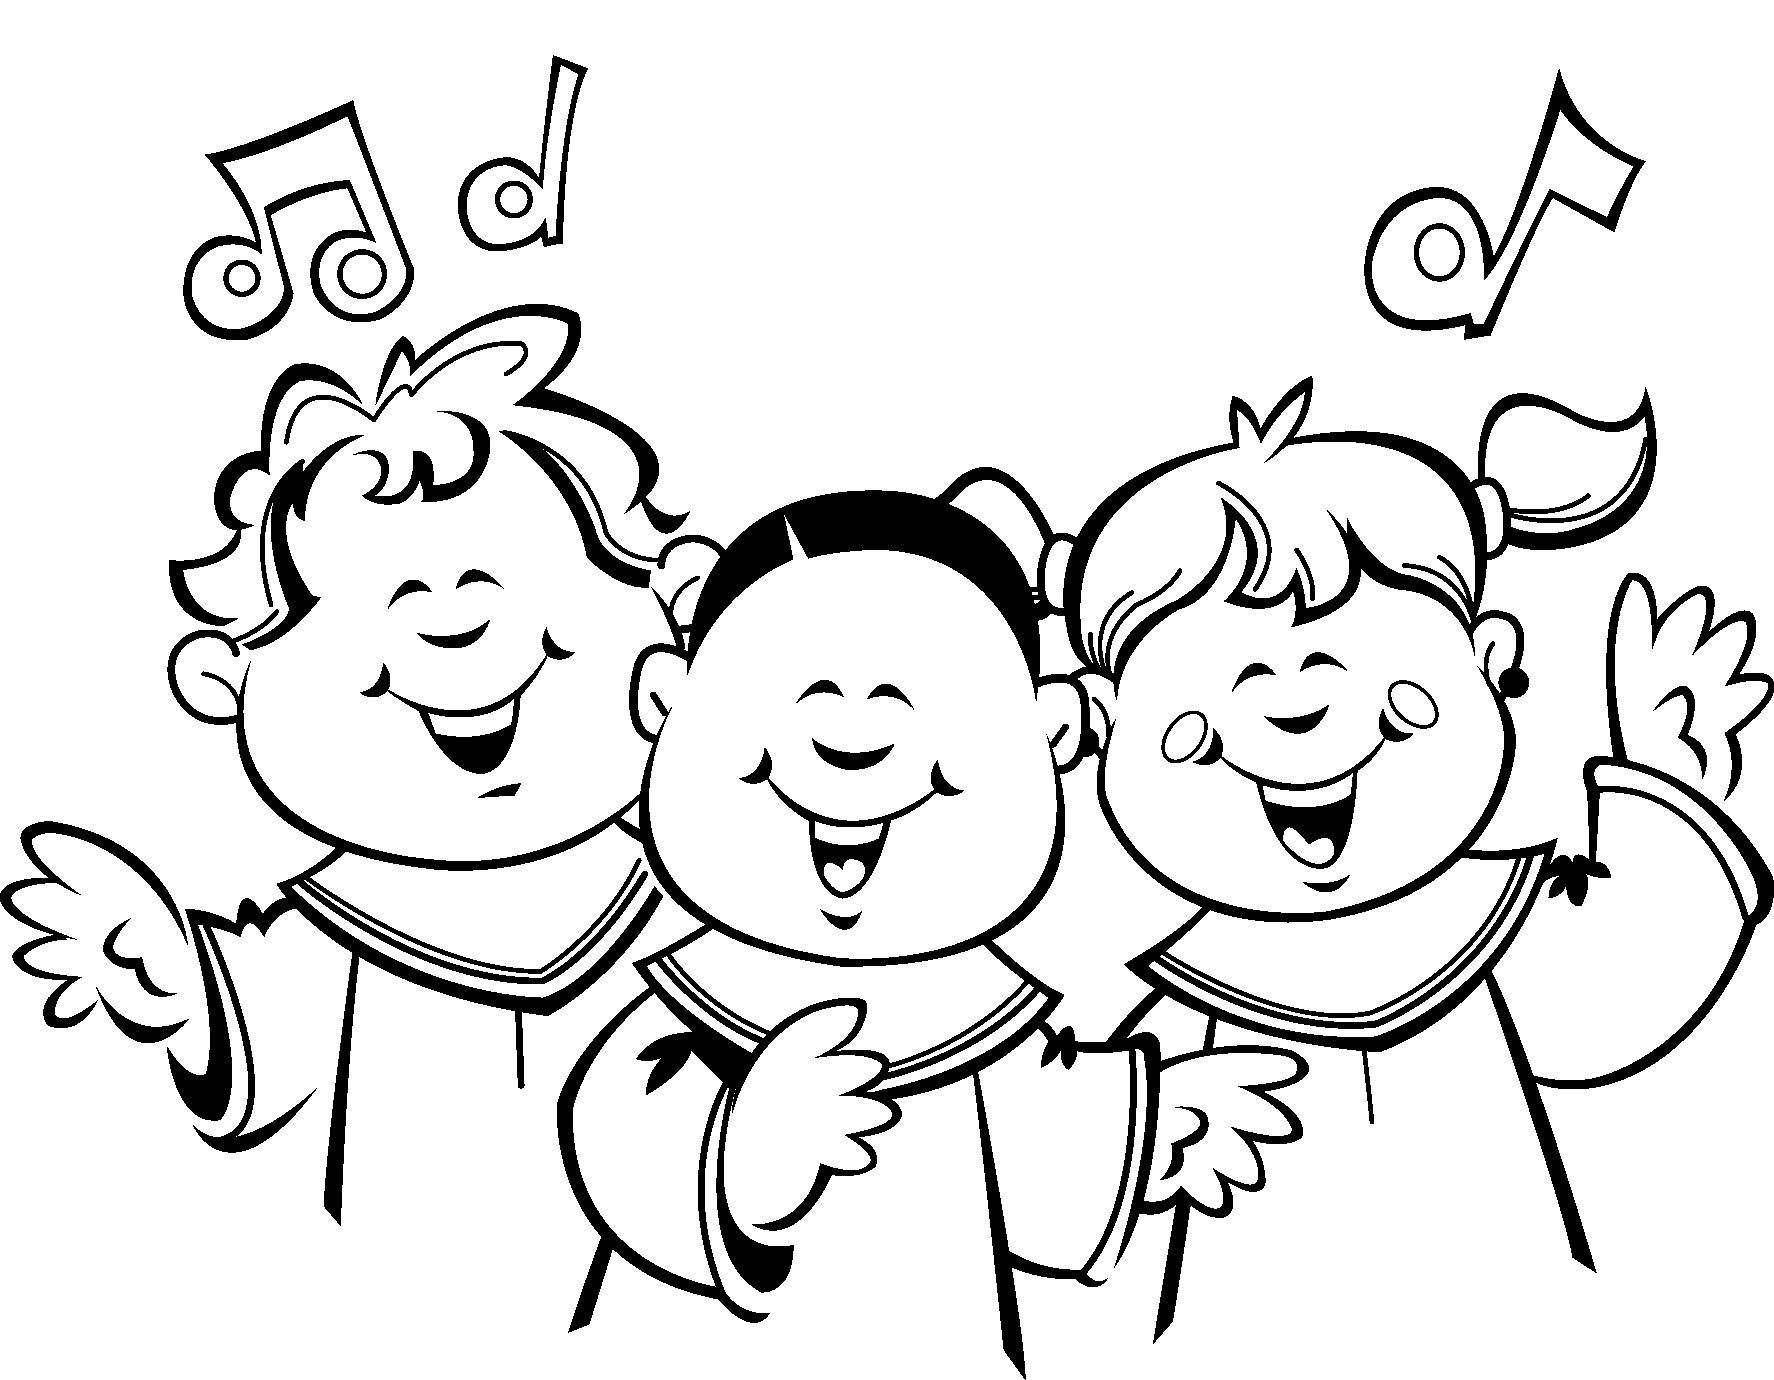 Children choir clip art sketch coloring page